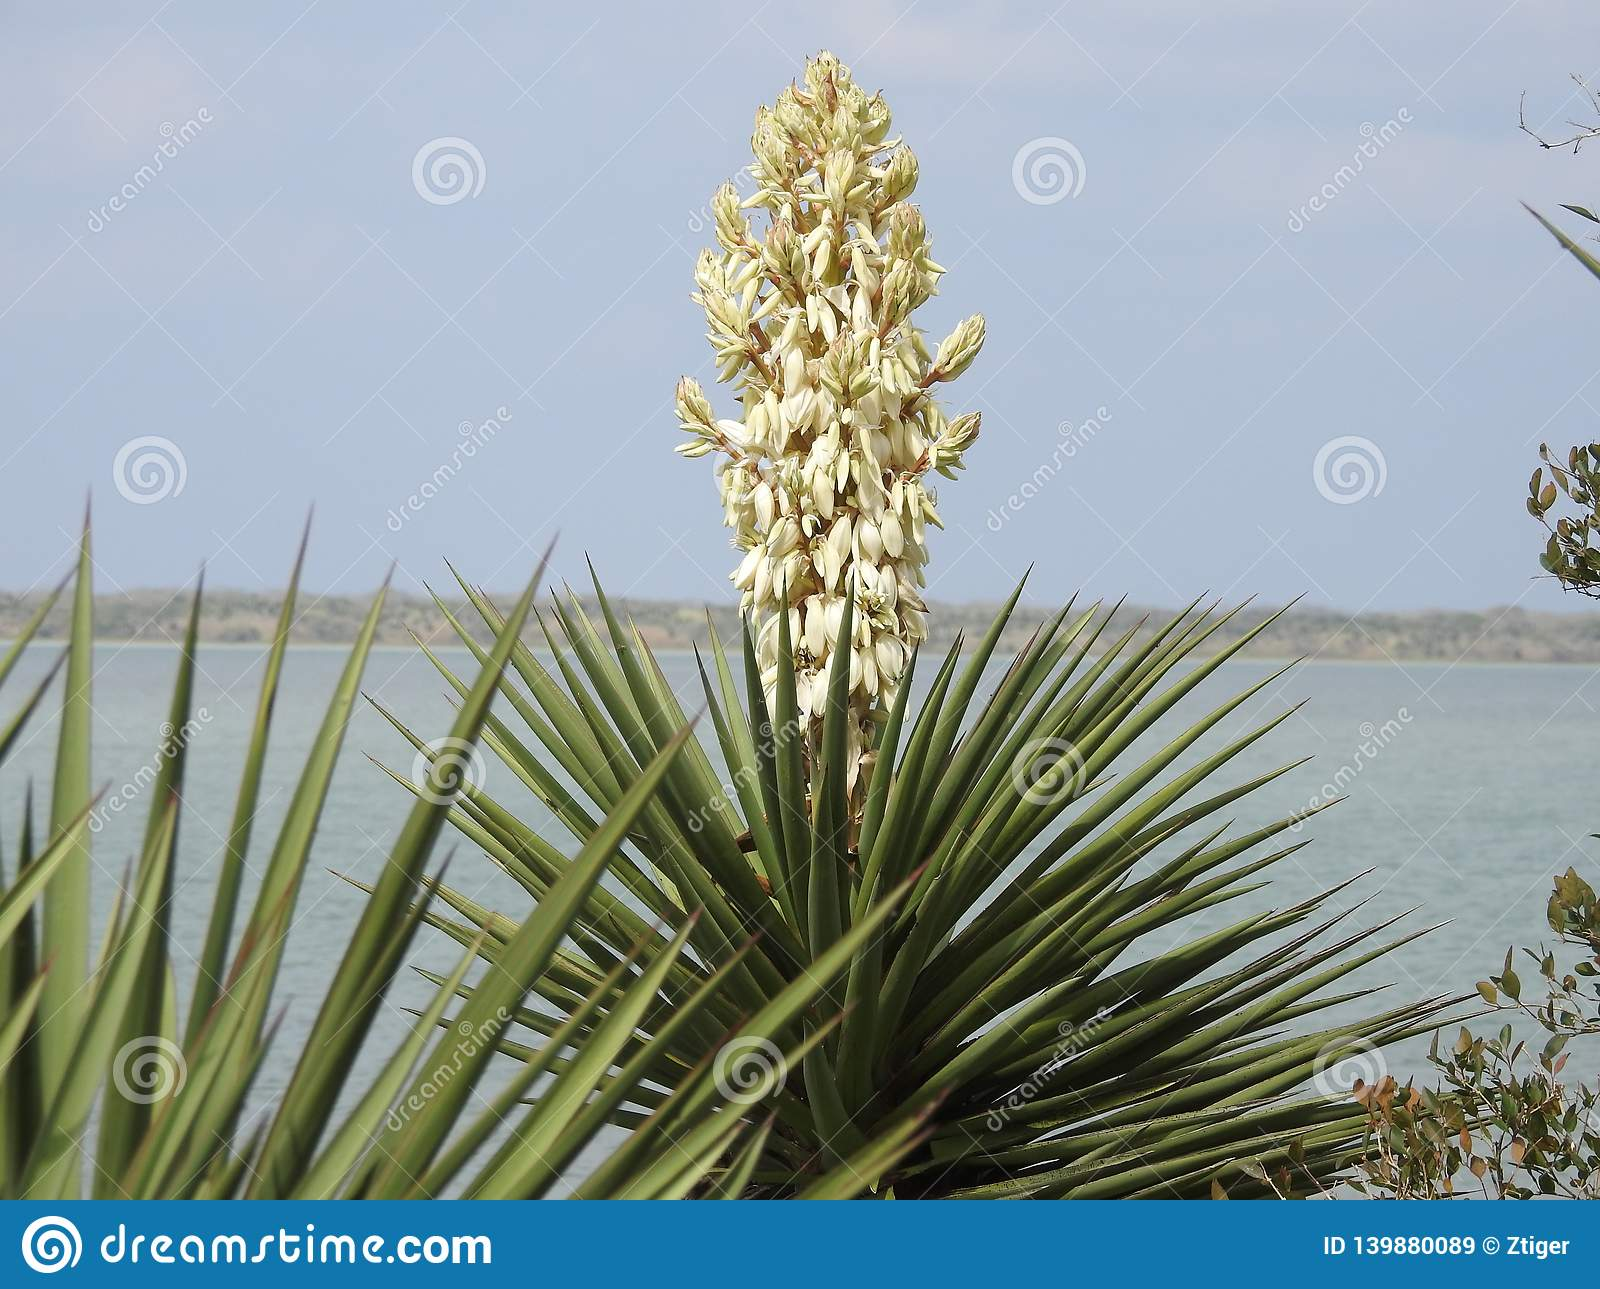 Yucca Plant in Bloom